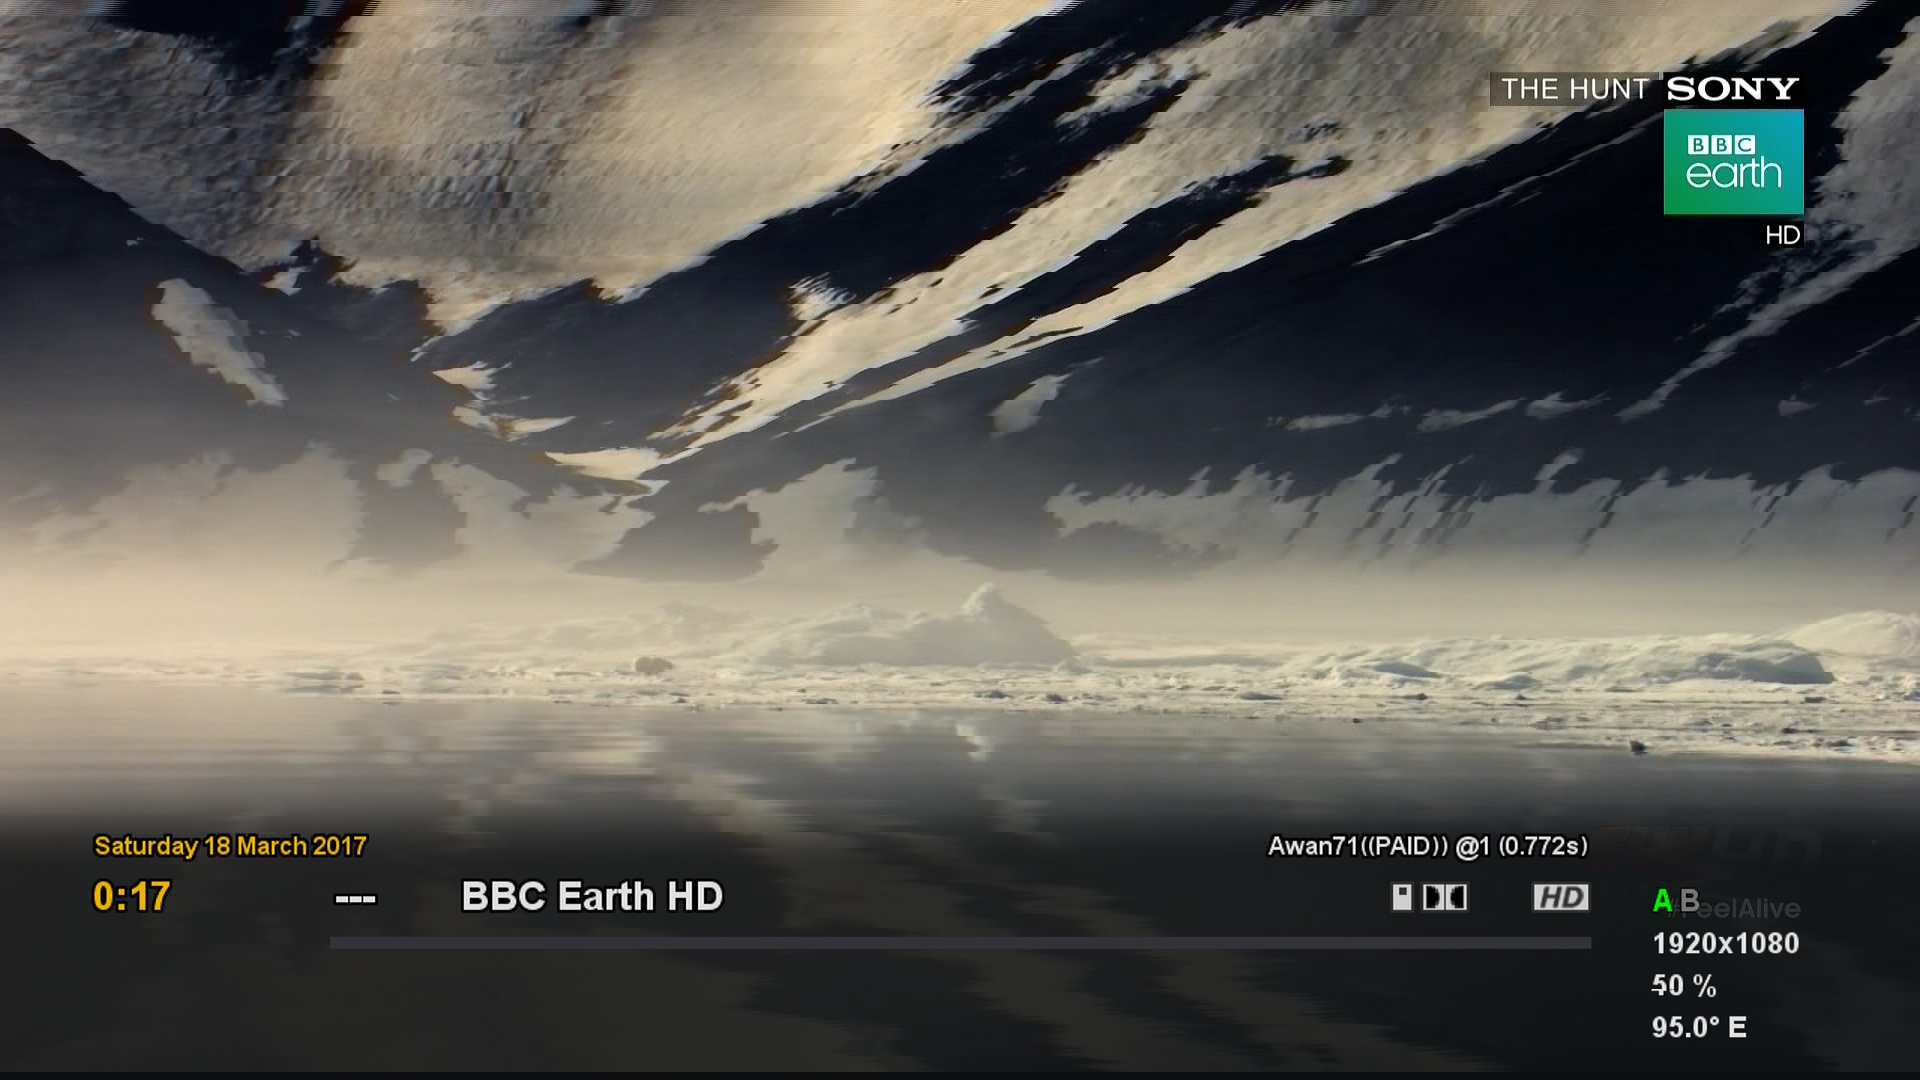 Sony BBC Earth added on Sun Direct HD - Golden Multimedia Forum